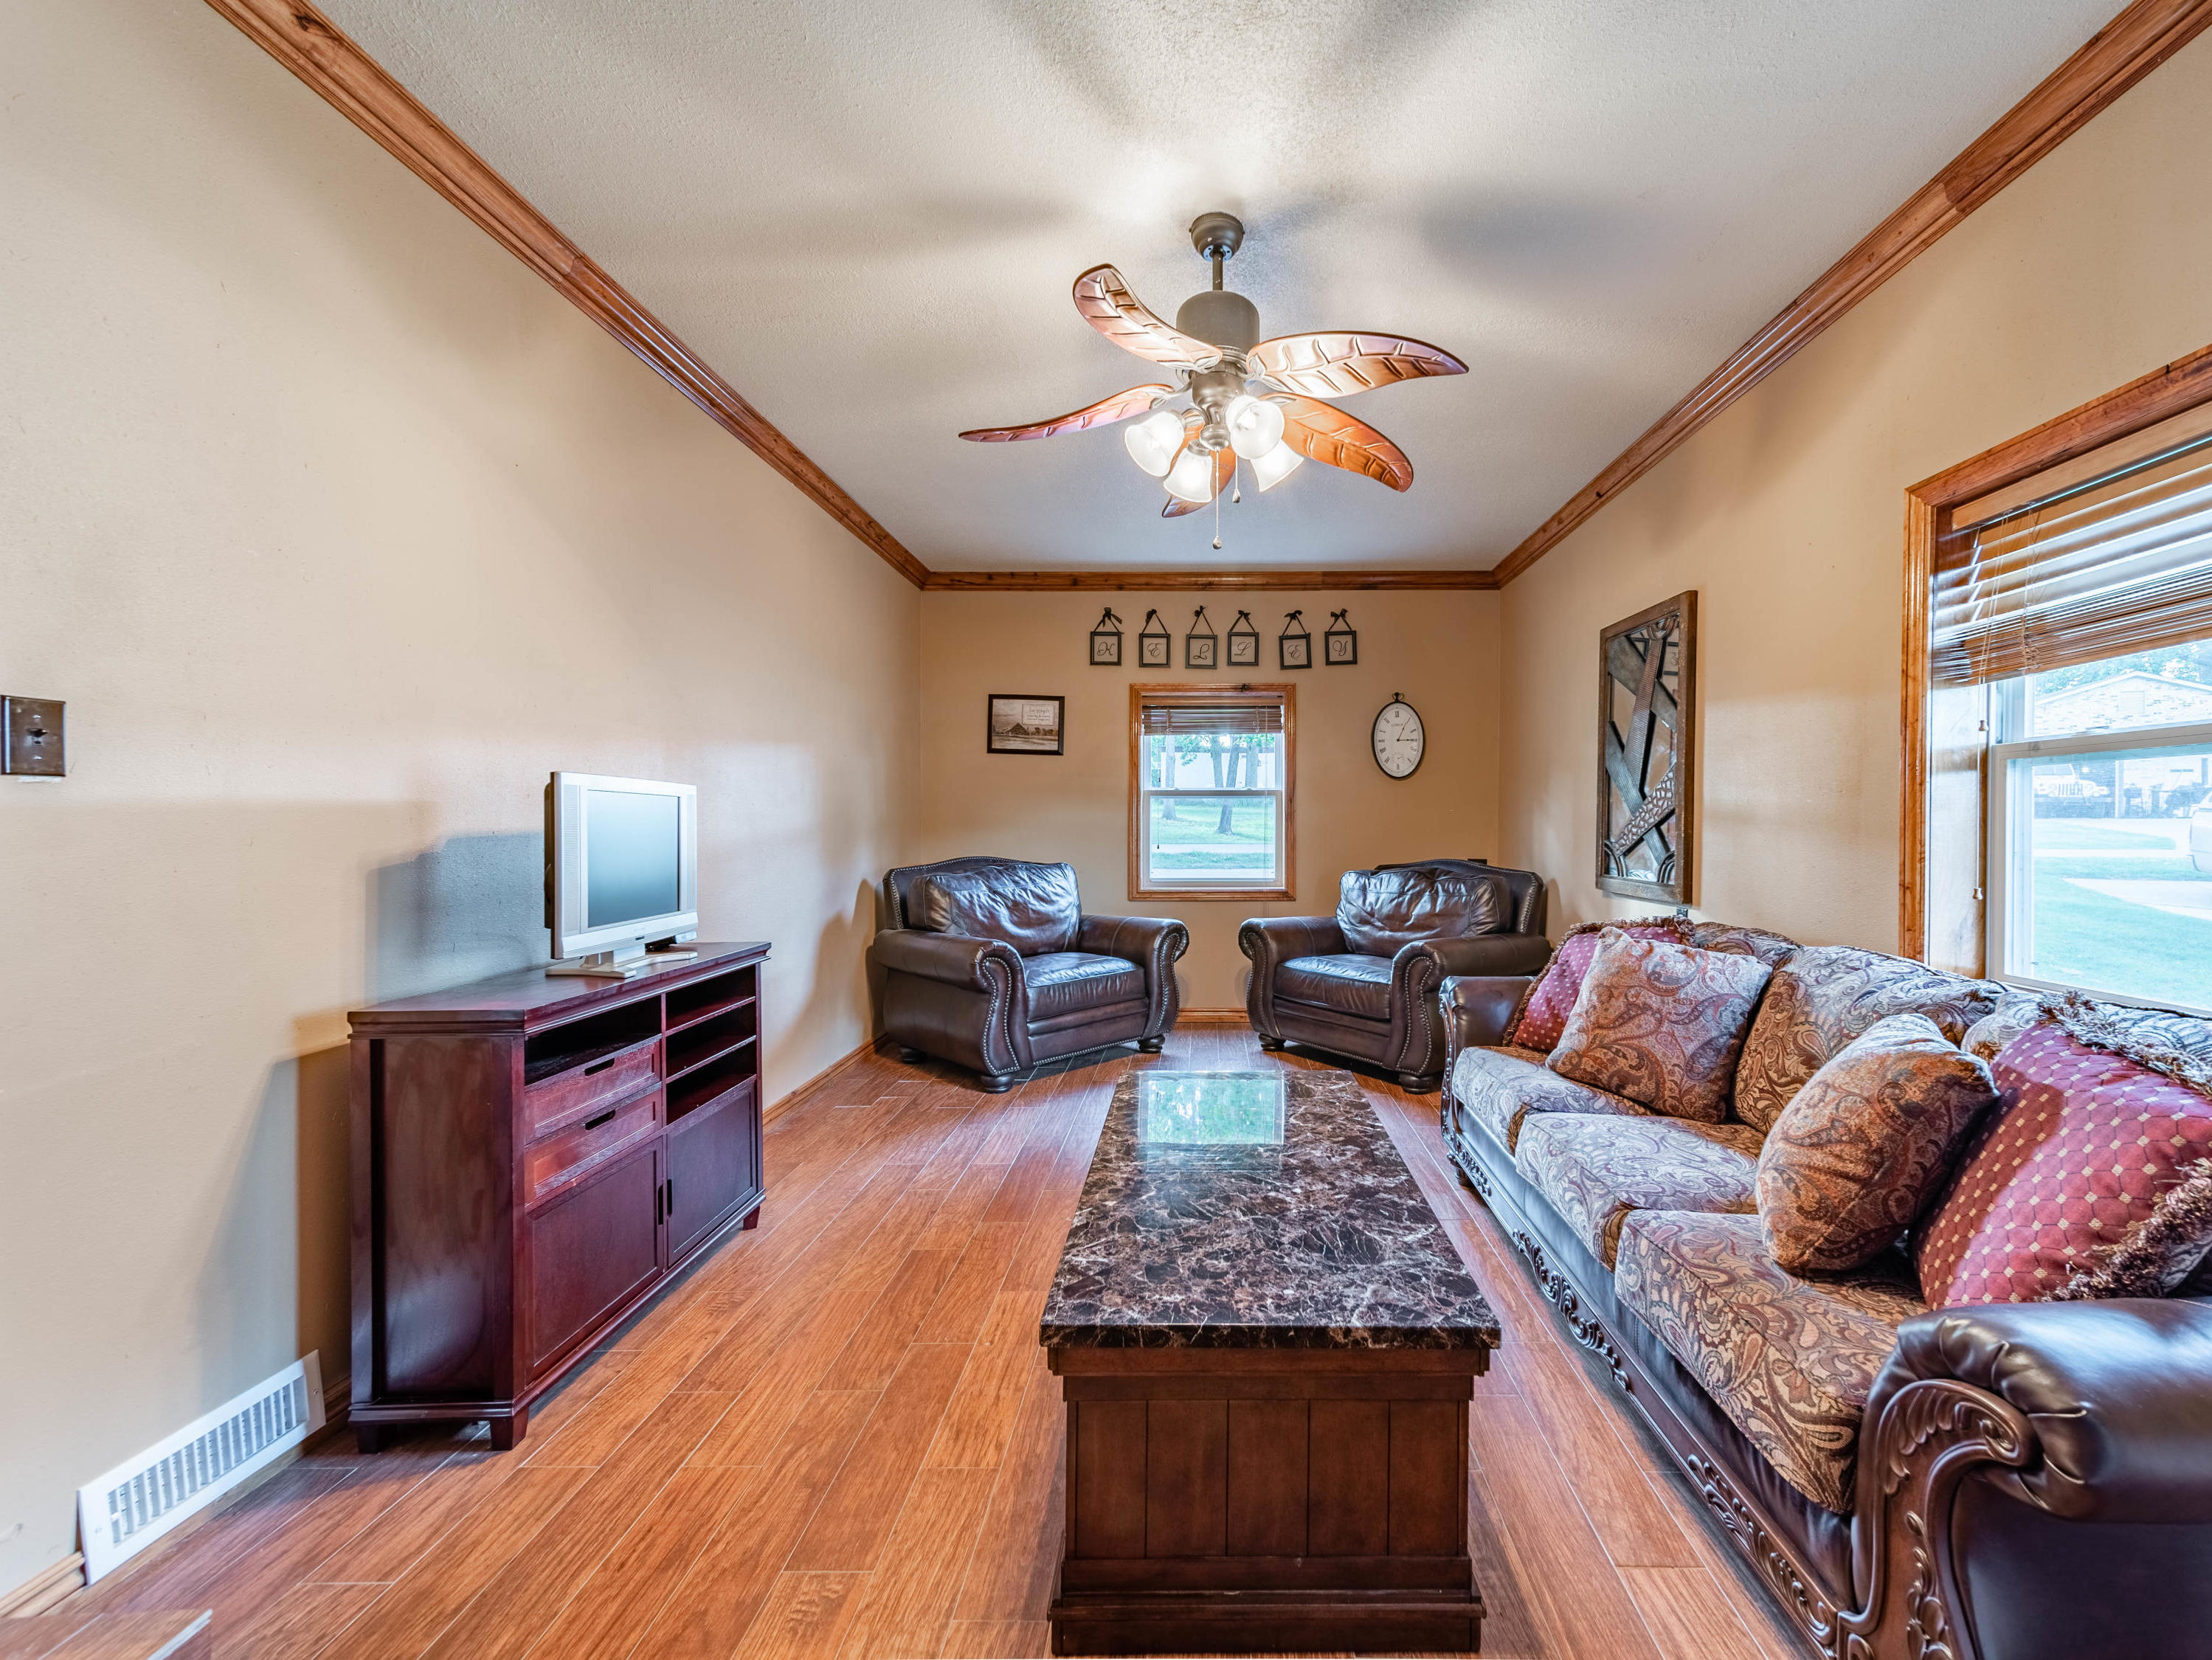 Closed | 453841 E 305  Afton, OK 74331 11